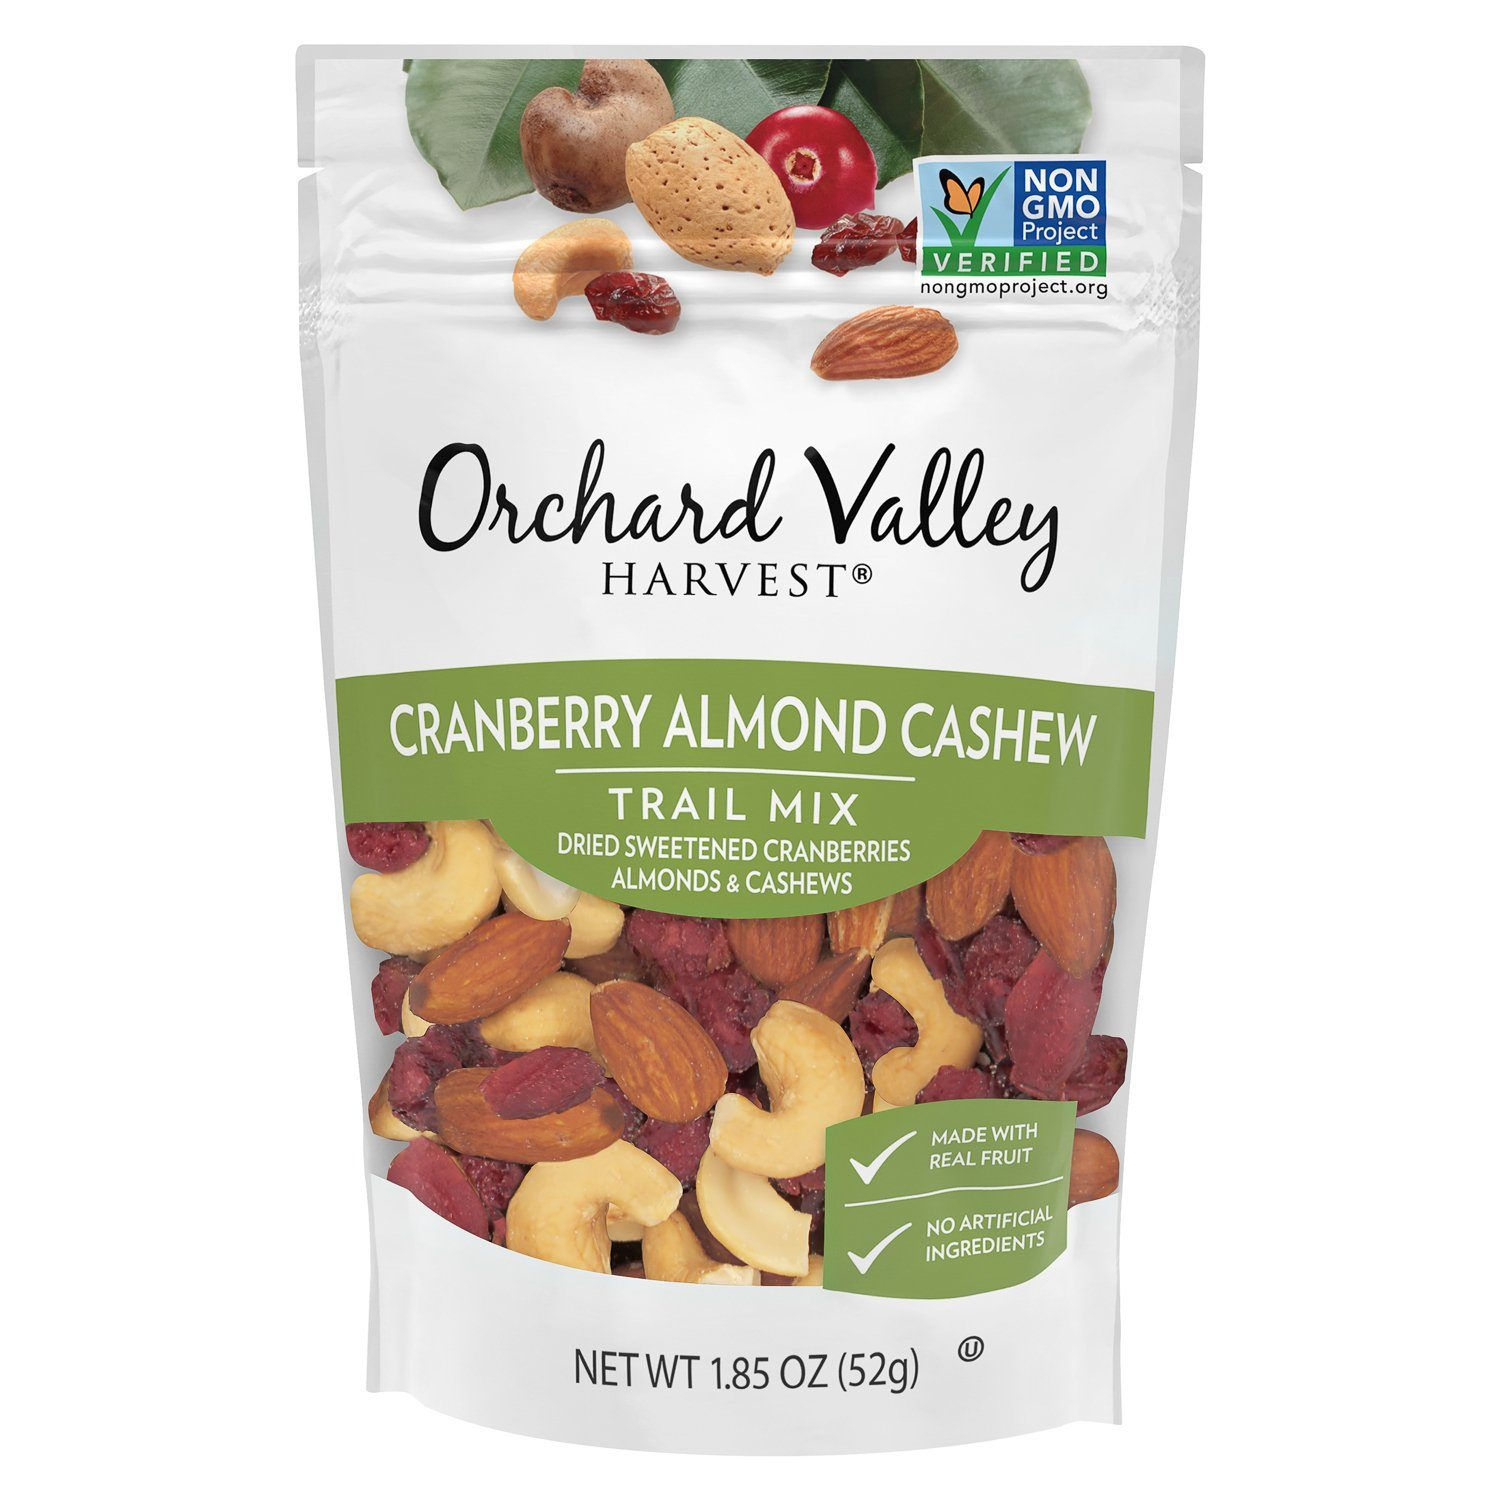 Orchard Valley Harvest Mix Orchard Valley Harvest Cranberry Almonf Cachew 1.85 Ounce